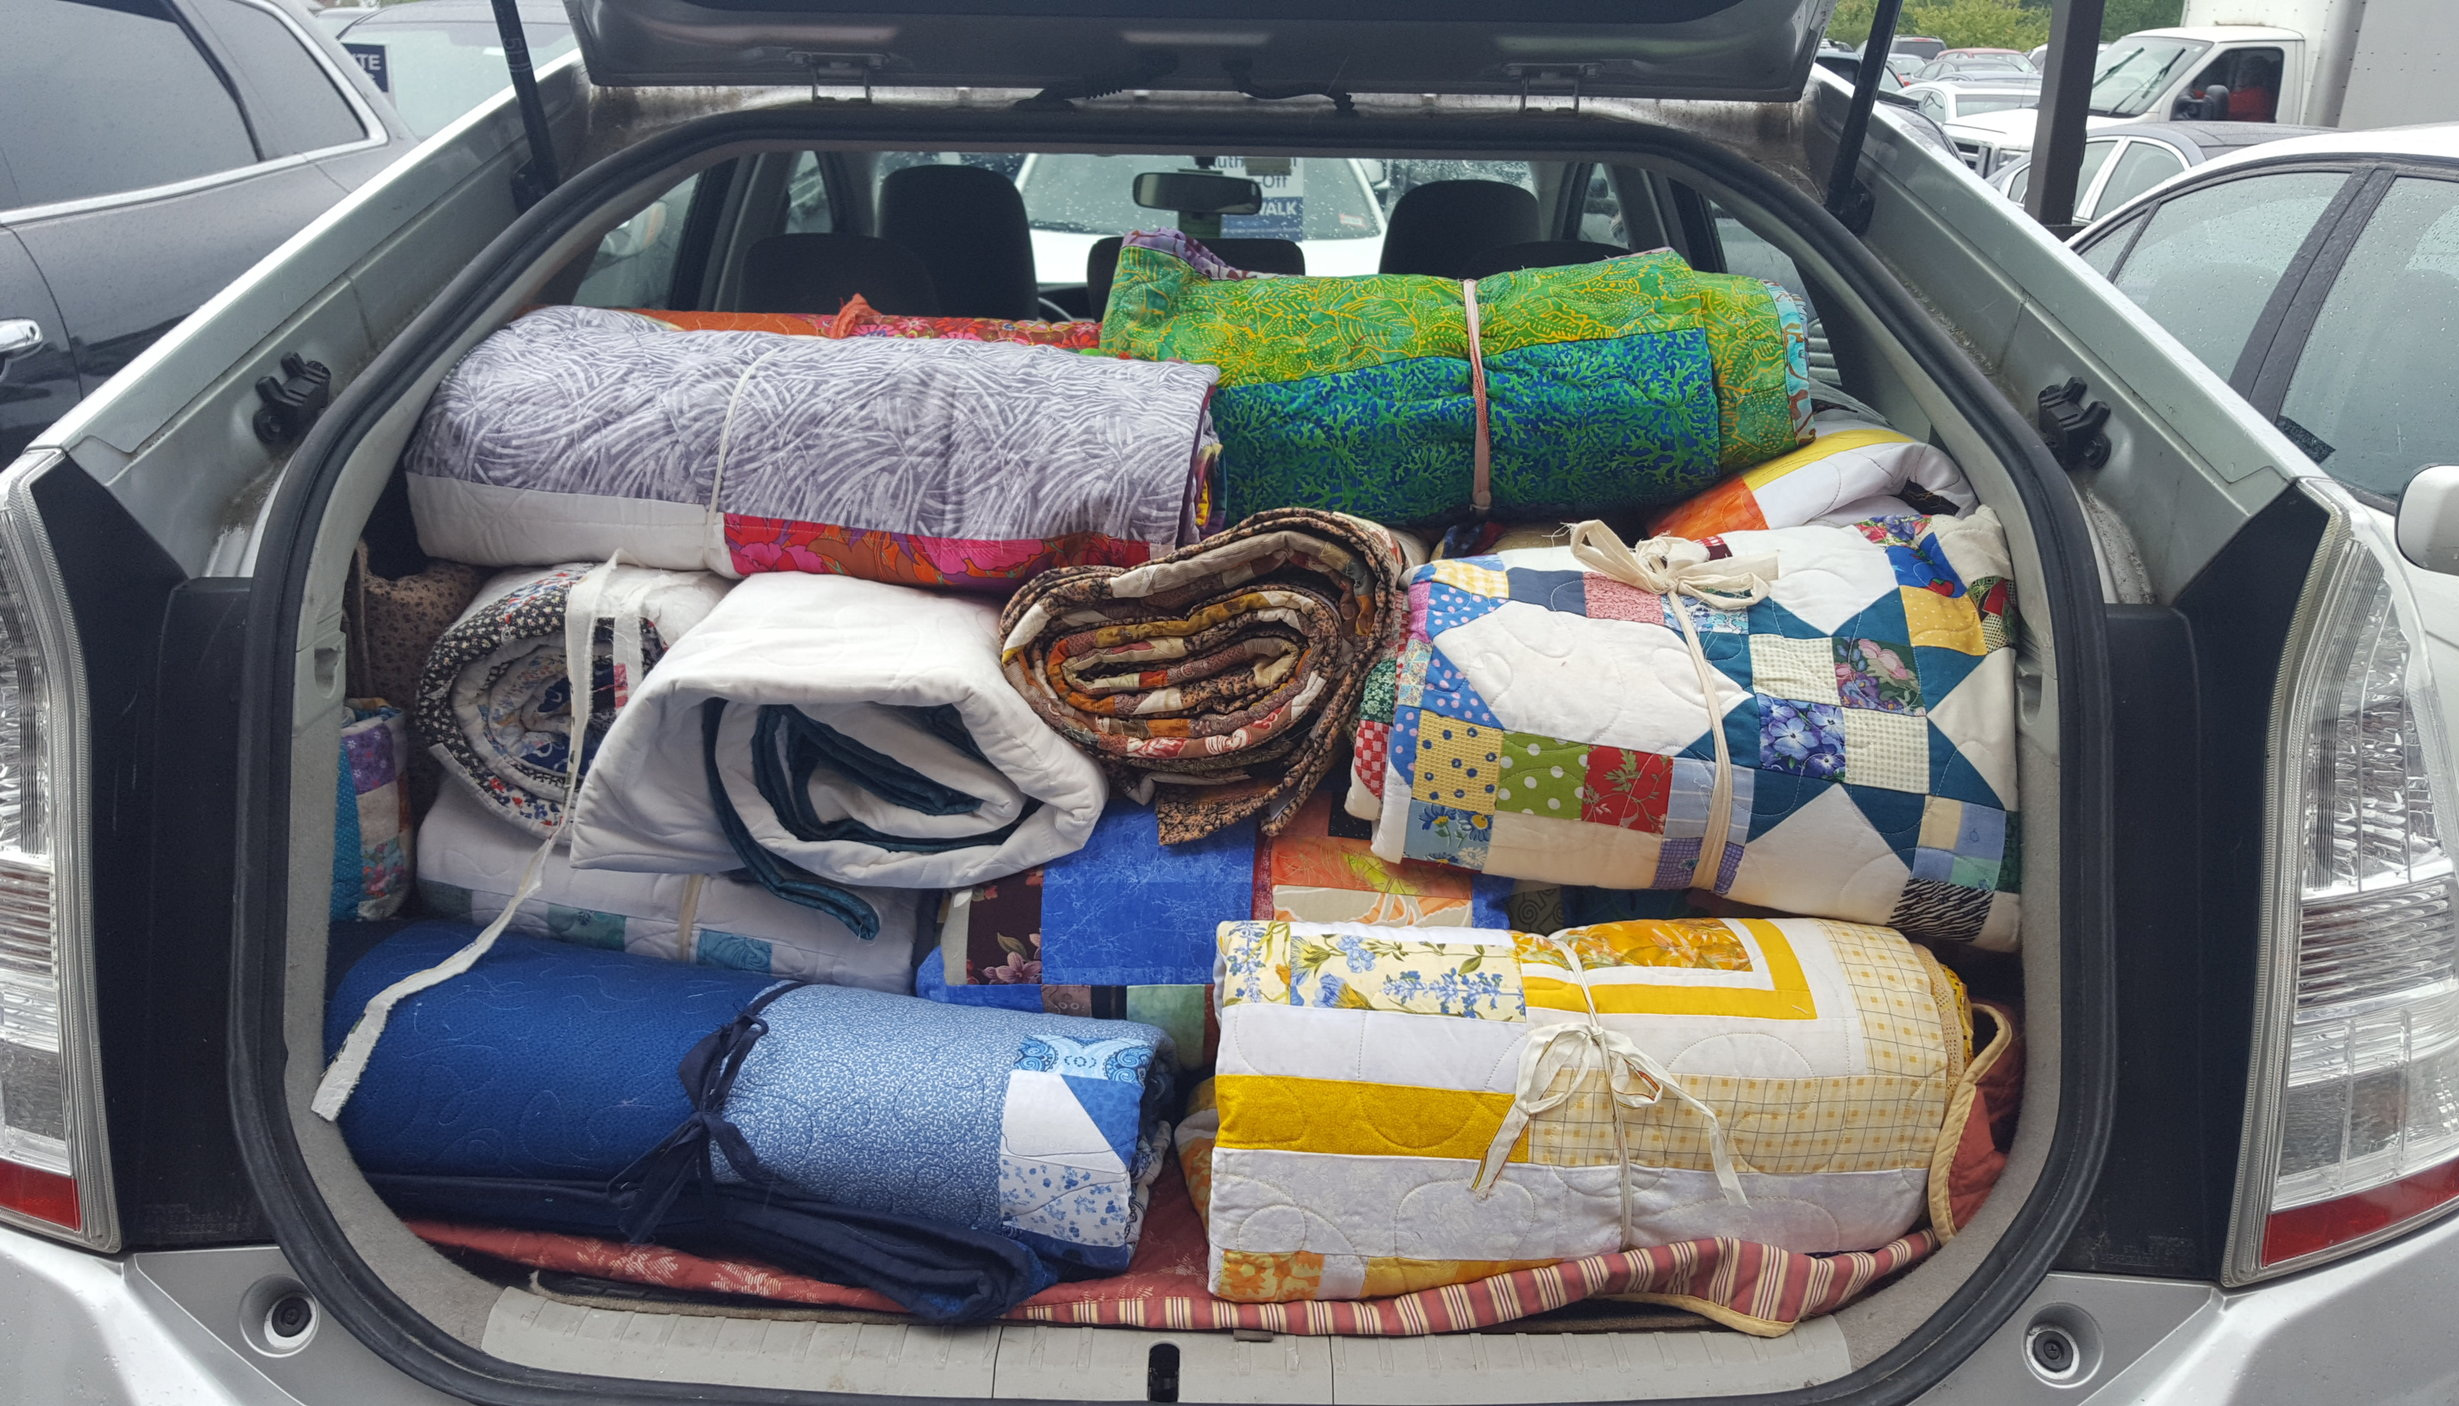 A trunk full of Comfort Quilts, made by the Brooklyn Quilters Guild, ready for delivery to Massachusetts gas explosion victims in September 2018 where more than 80 homes were destroyed.